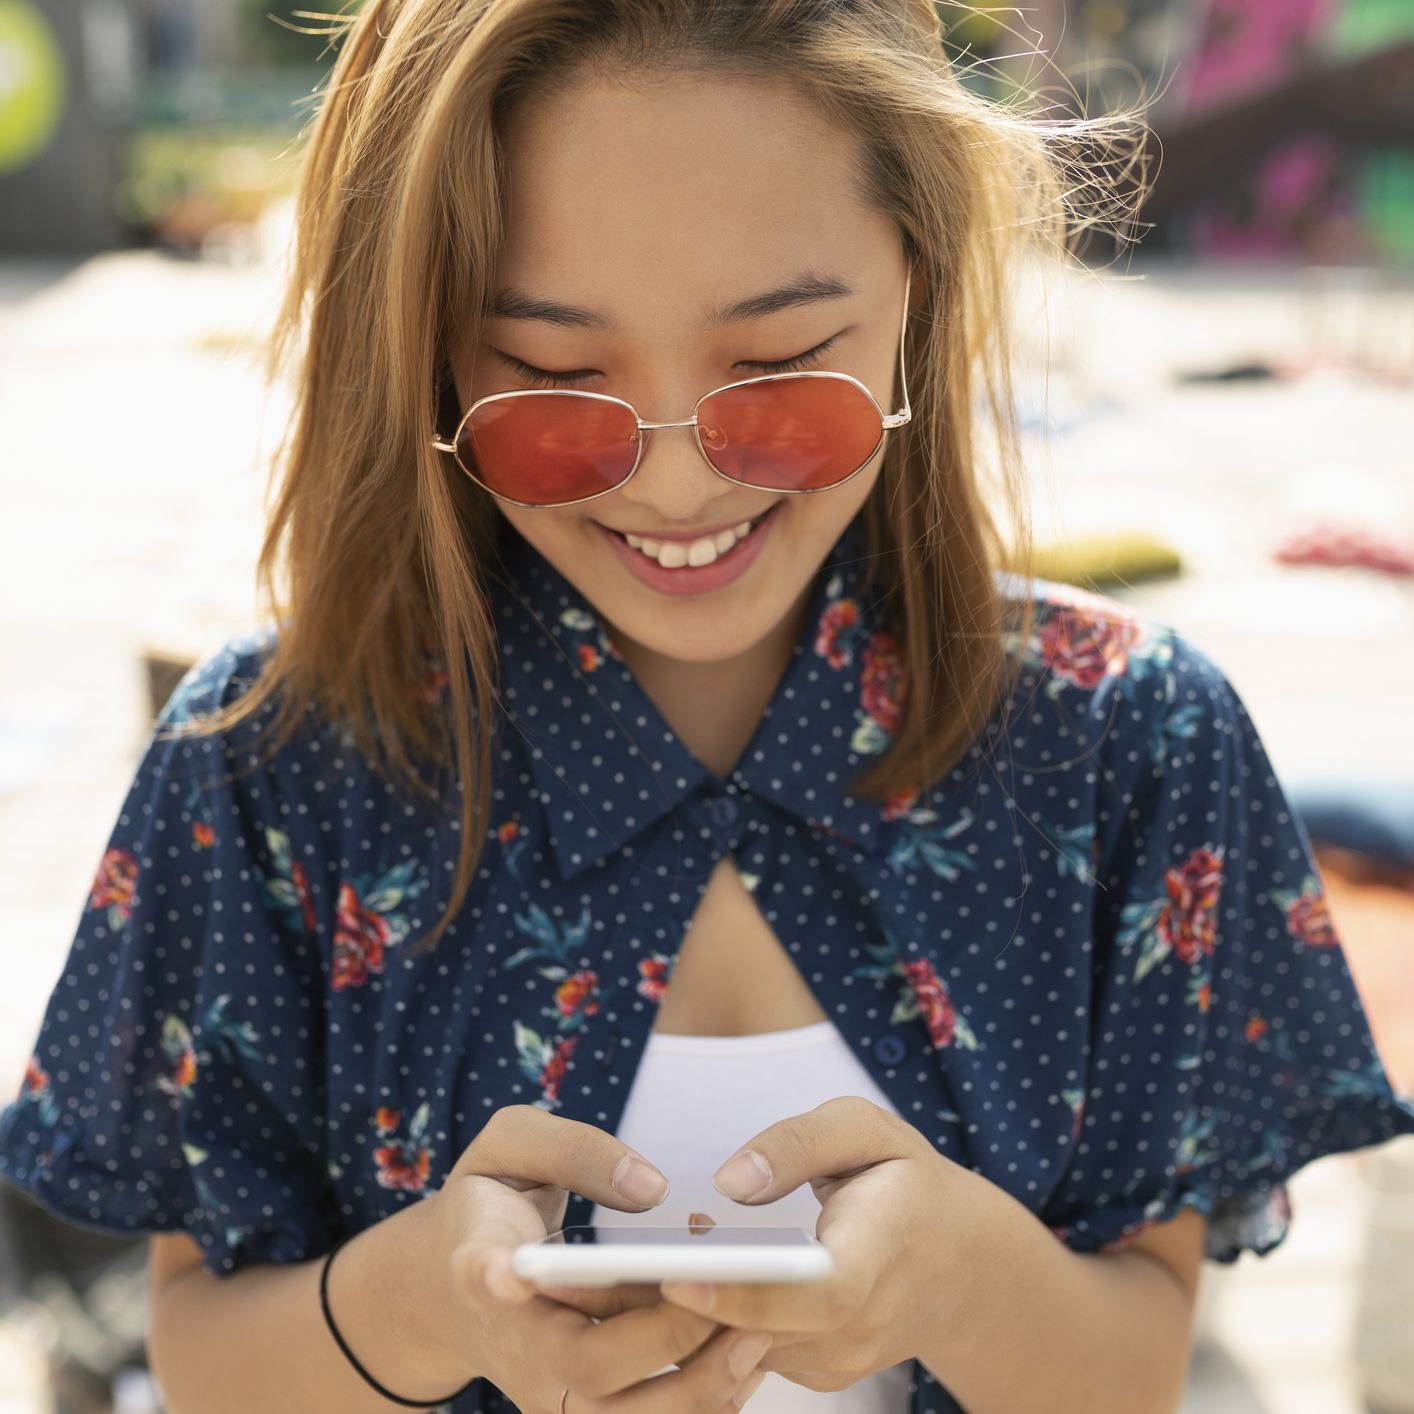 How to Make Money as an Instagram Influencer